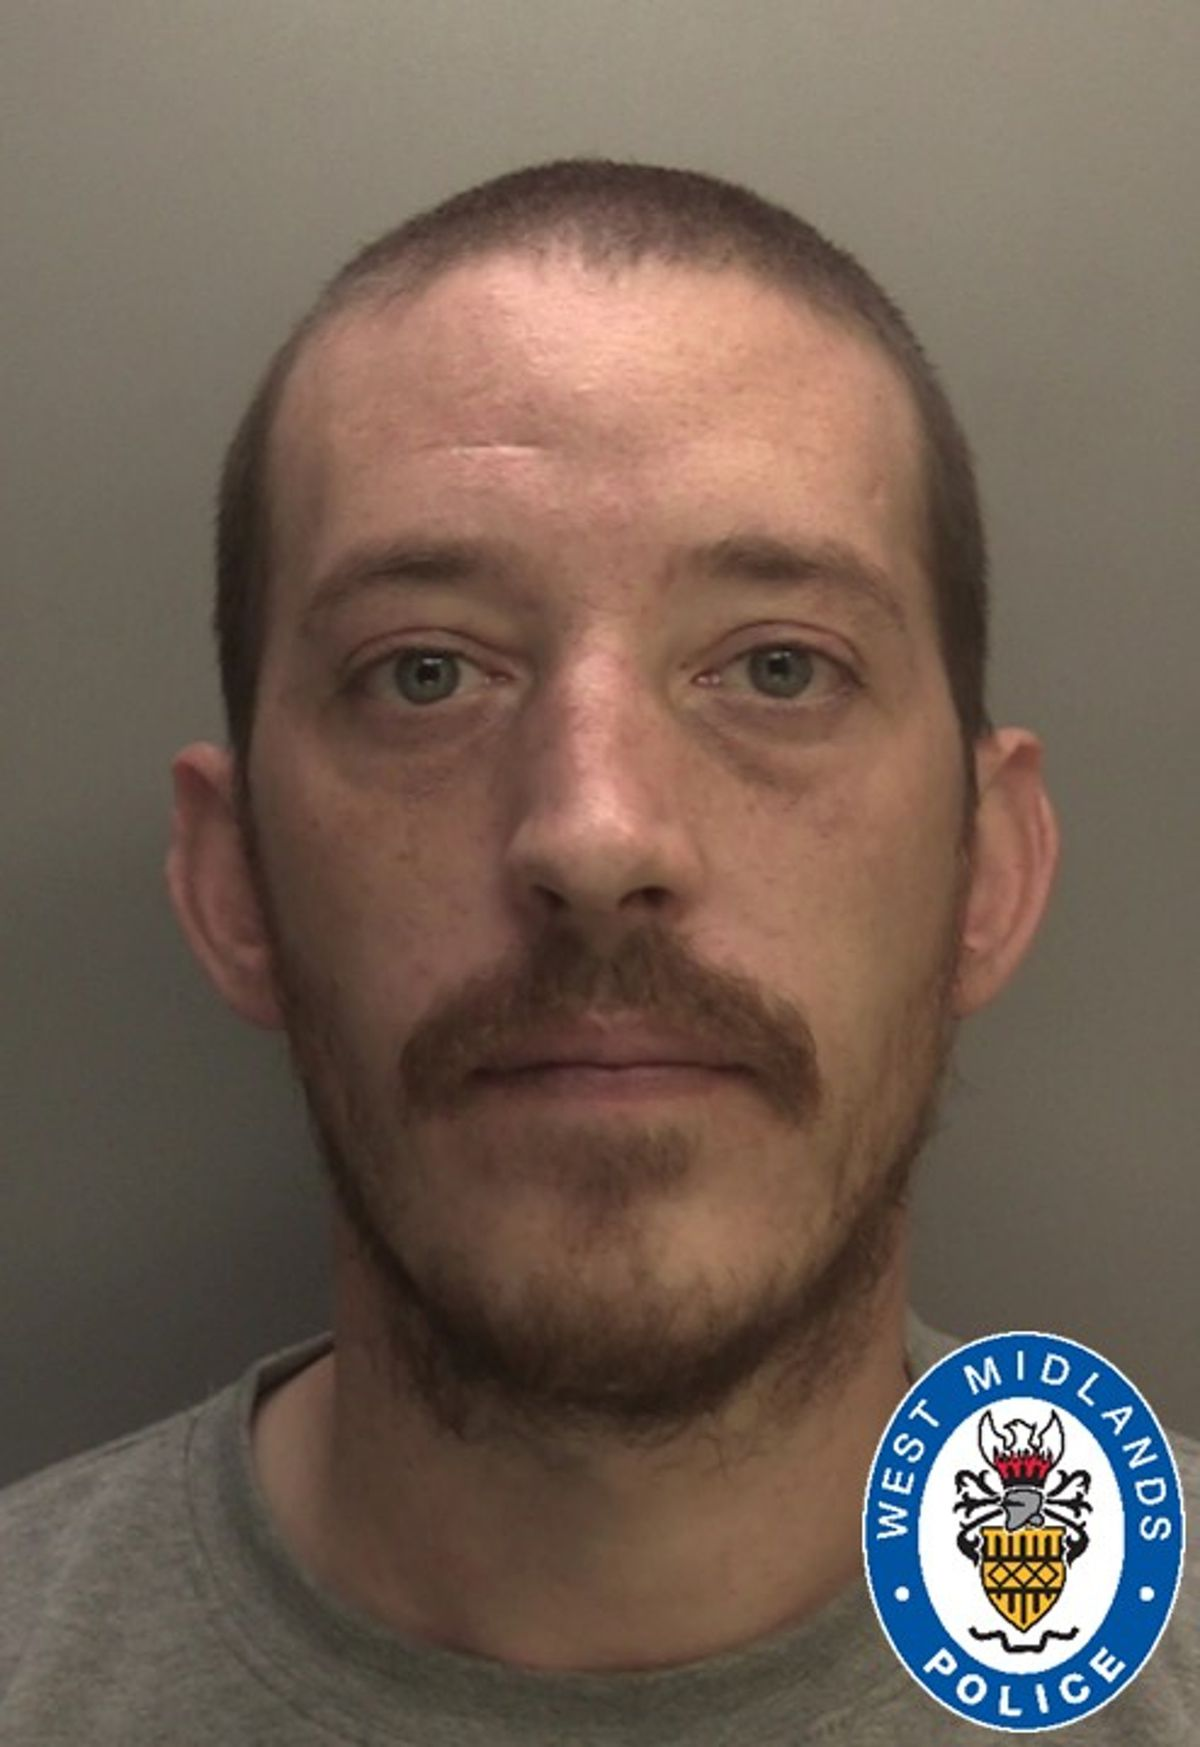 David Rogers was convicted of murder. Photo: West Midlands Police